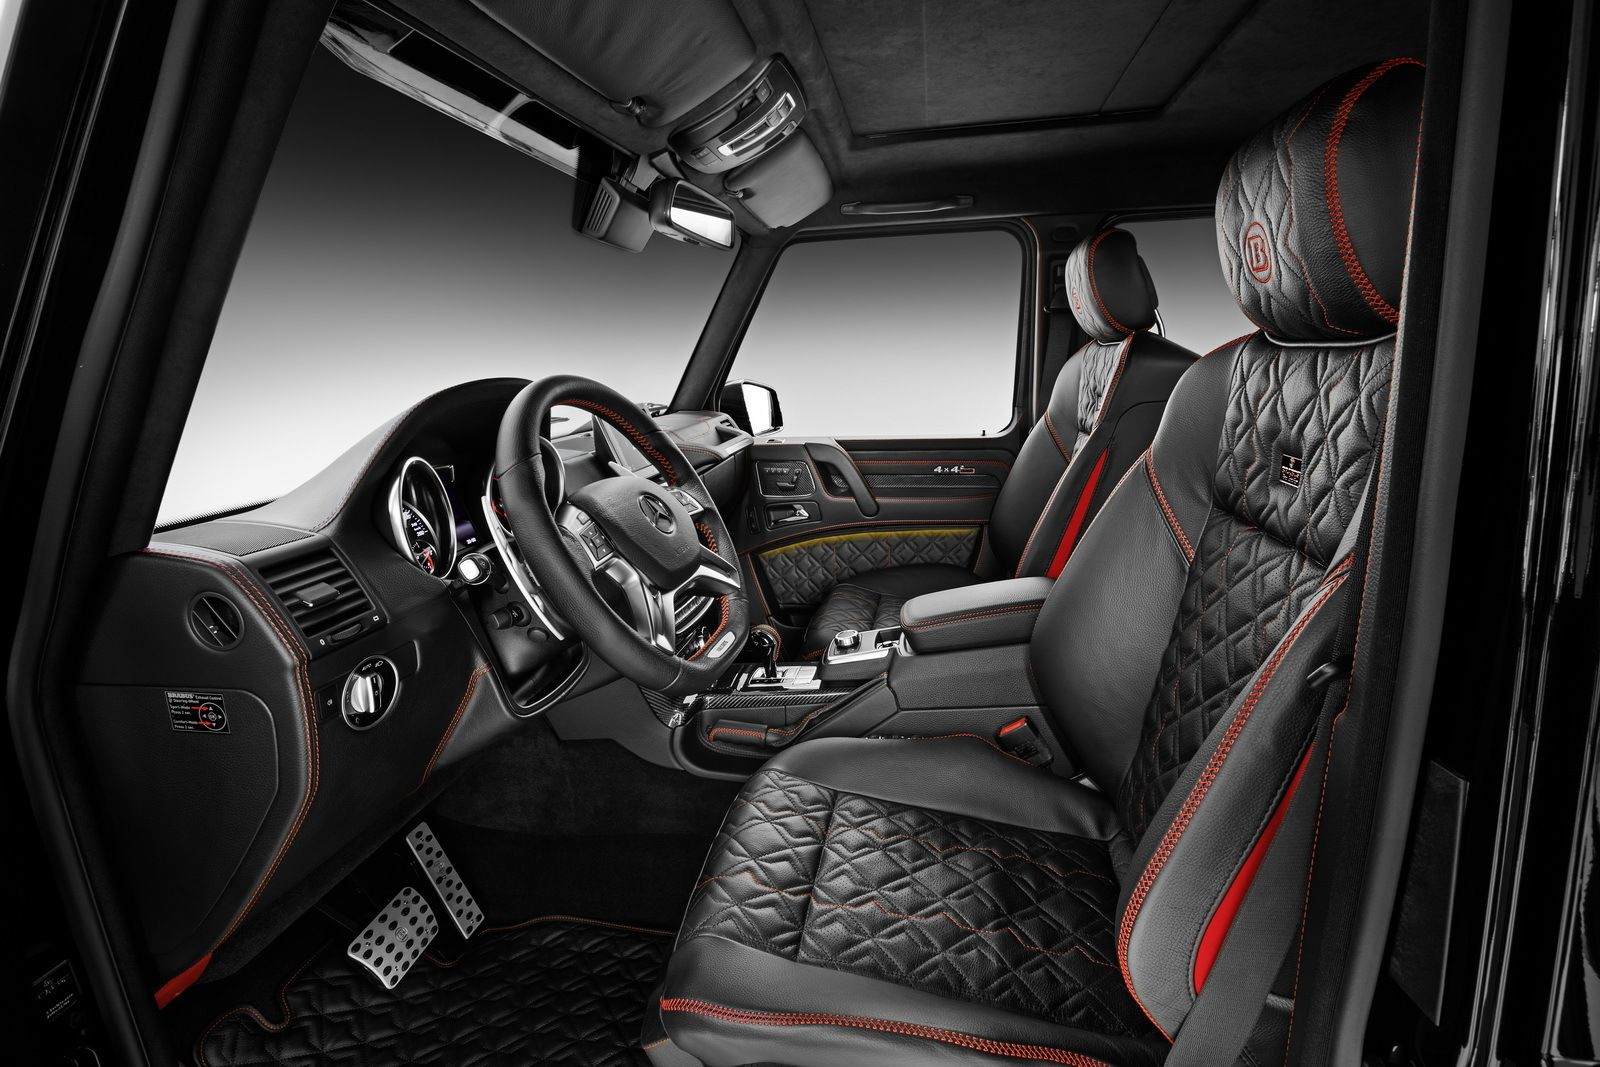 Brabus Mercedes Benz G 500 4 X 4 009 1 Jpg 1600 1067 Car